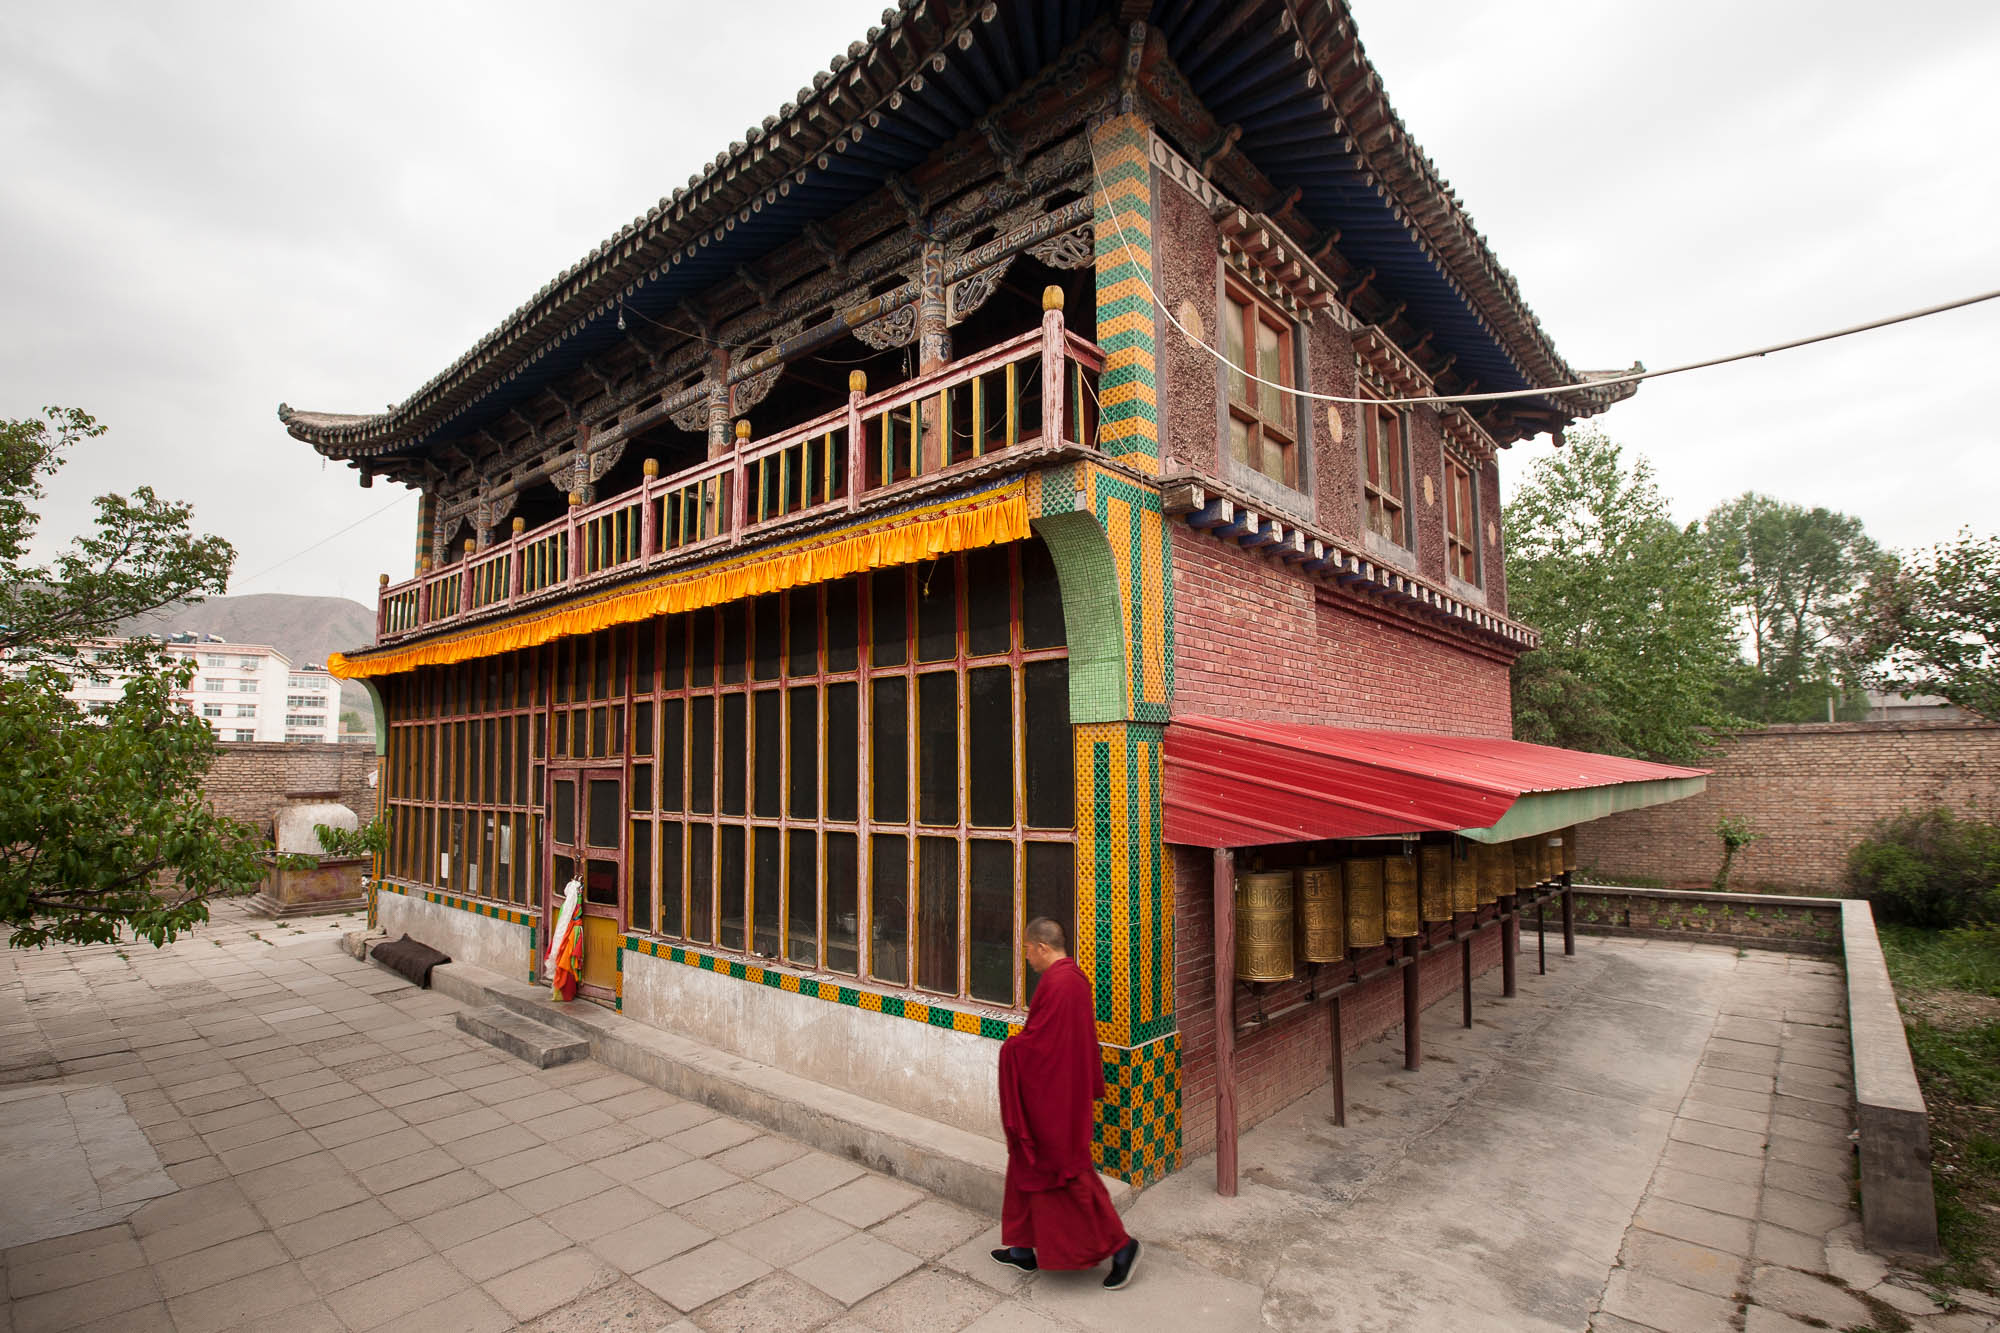 temple and monk